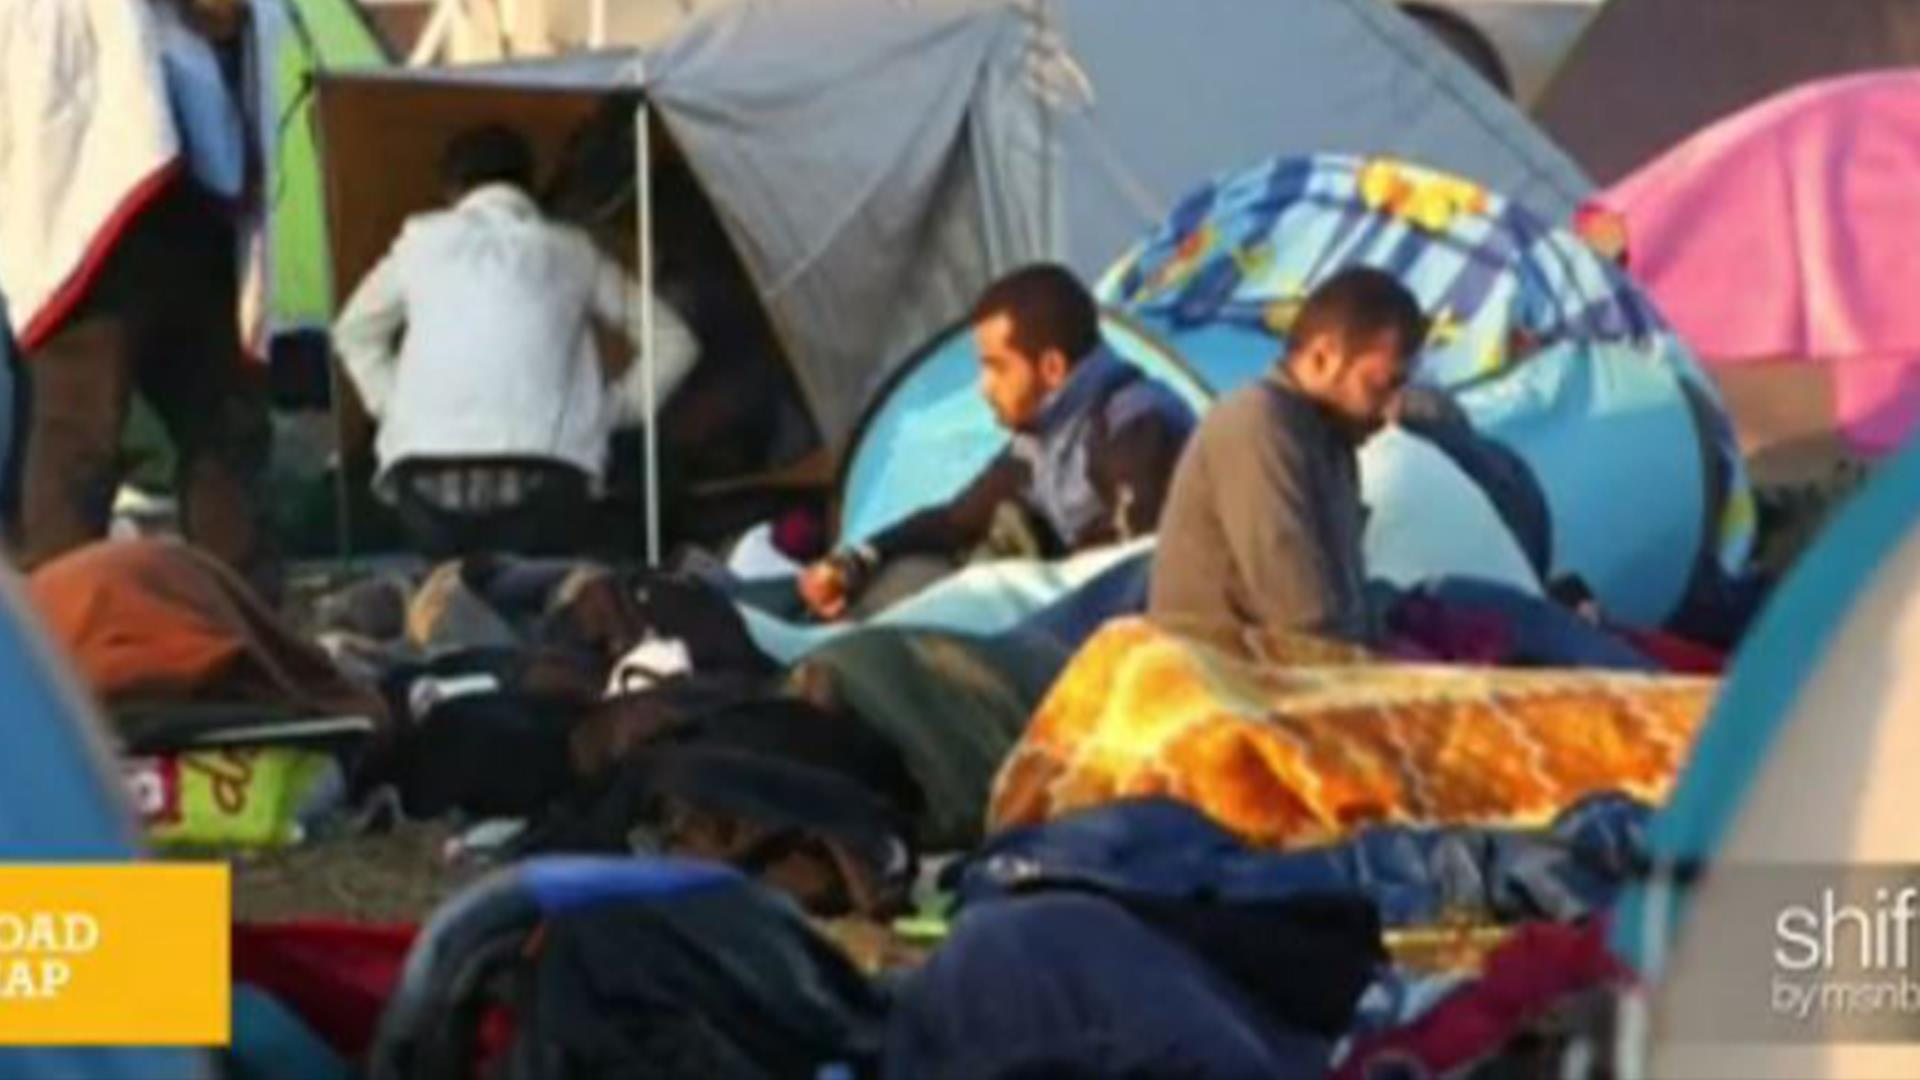 Europe deeply divided over influx of migrants